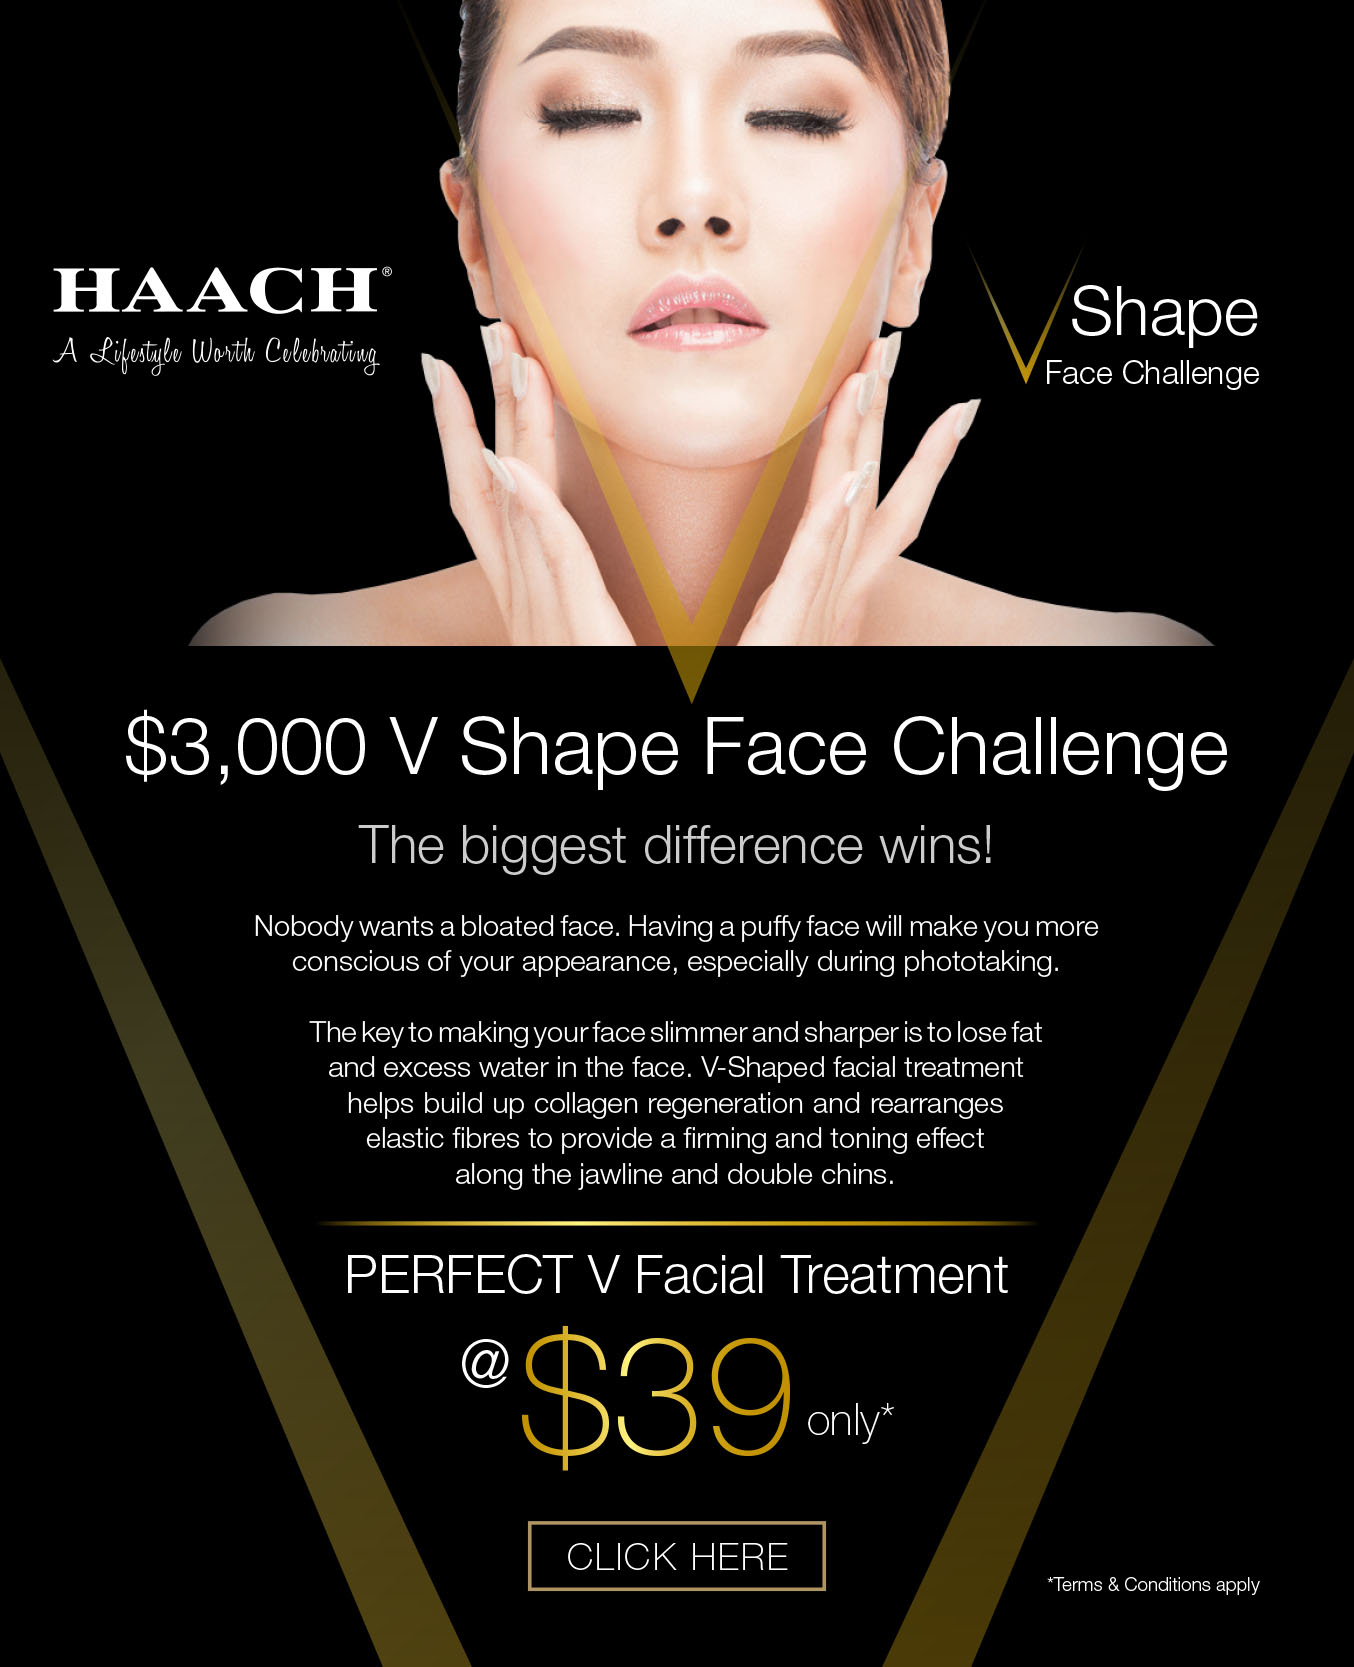 HAACH V Shape Face Challenge - The biggest difference wins! Nobody wants a bloated face. Having a puffy face will make you more conscious of your appearance, especially during photo-taking. Experience the Perfect V-Facial treatment day. Click here to find out more.